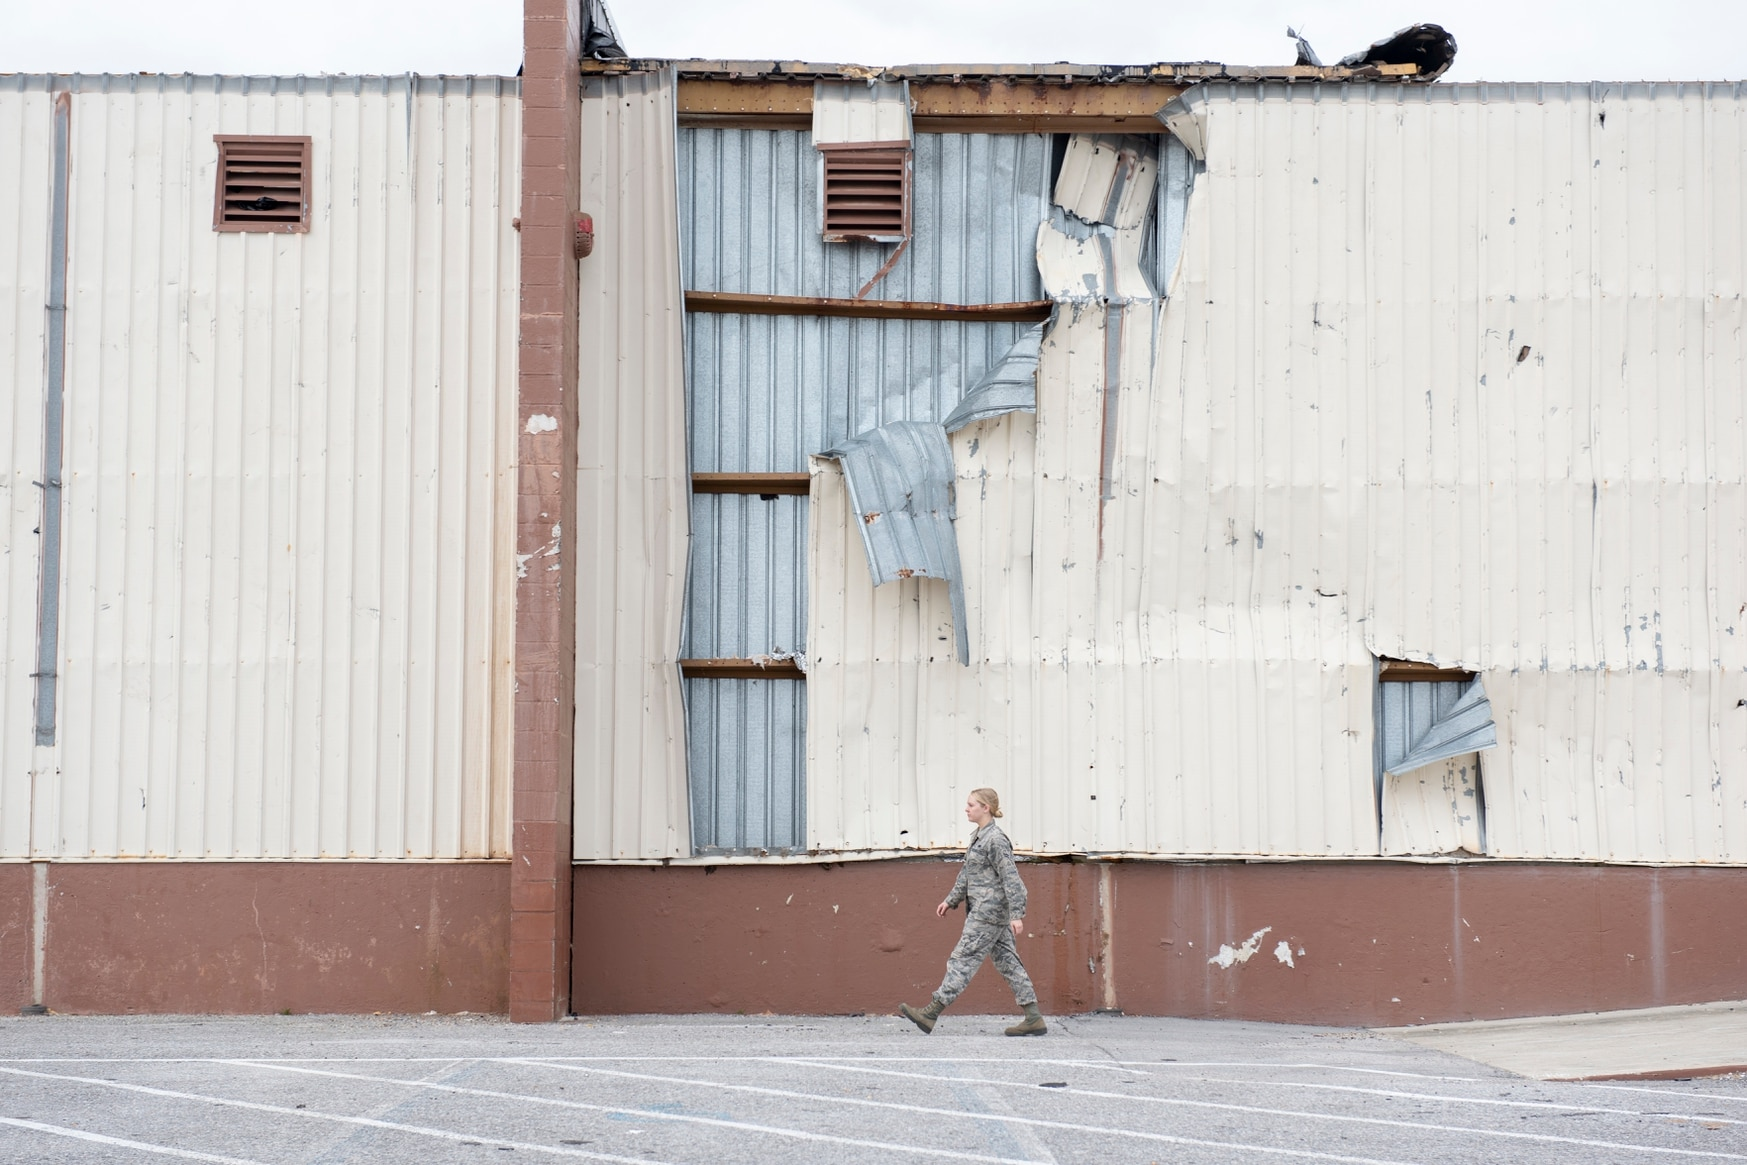 An airman walks past the 325th Logistics Readiness Squadron materiel management flight warehouse at Tyndall Air Force Base, Fla., in 2019. Airmen from various installations traveled there in support of post Hurricane Michael recovery efforts. (Senior Airman Javier Alvarez/U.S. Air Force)